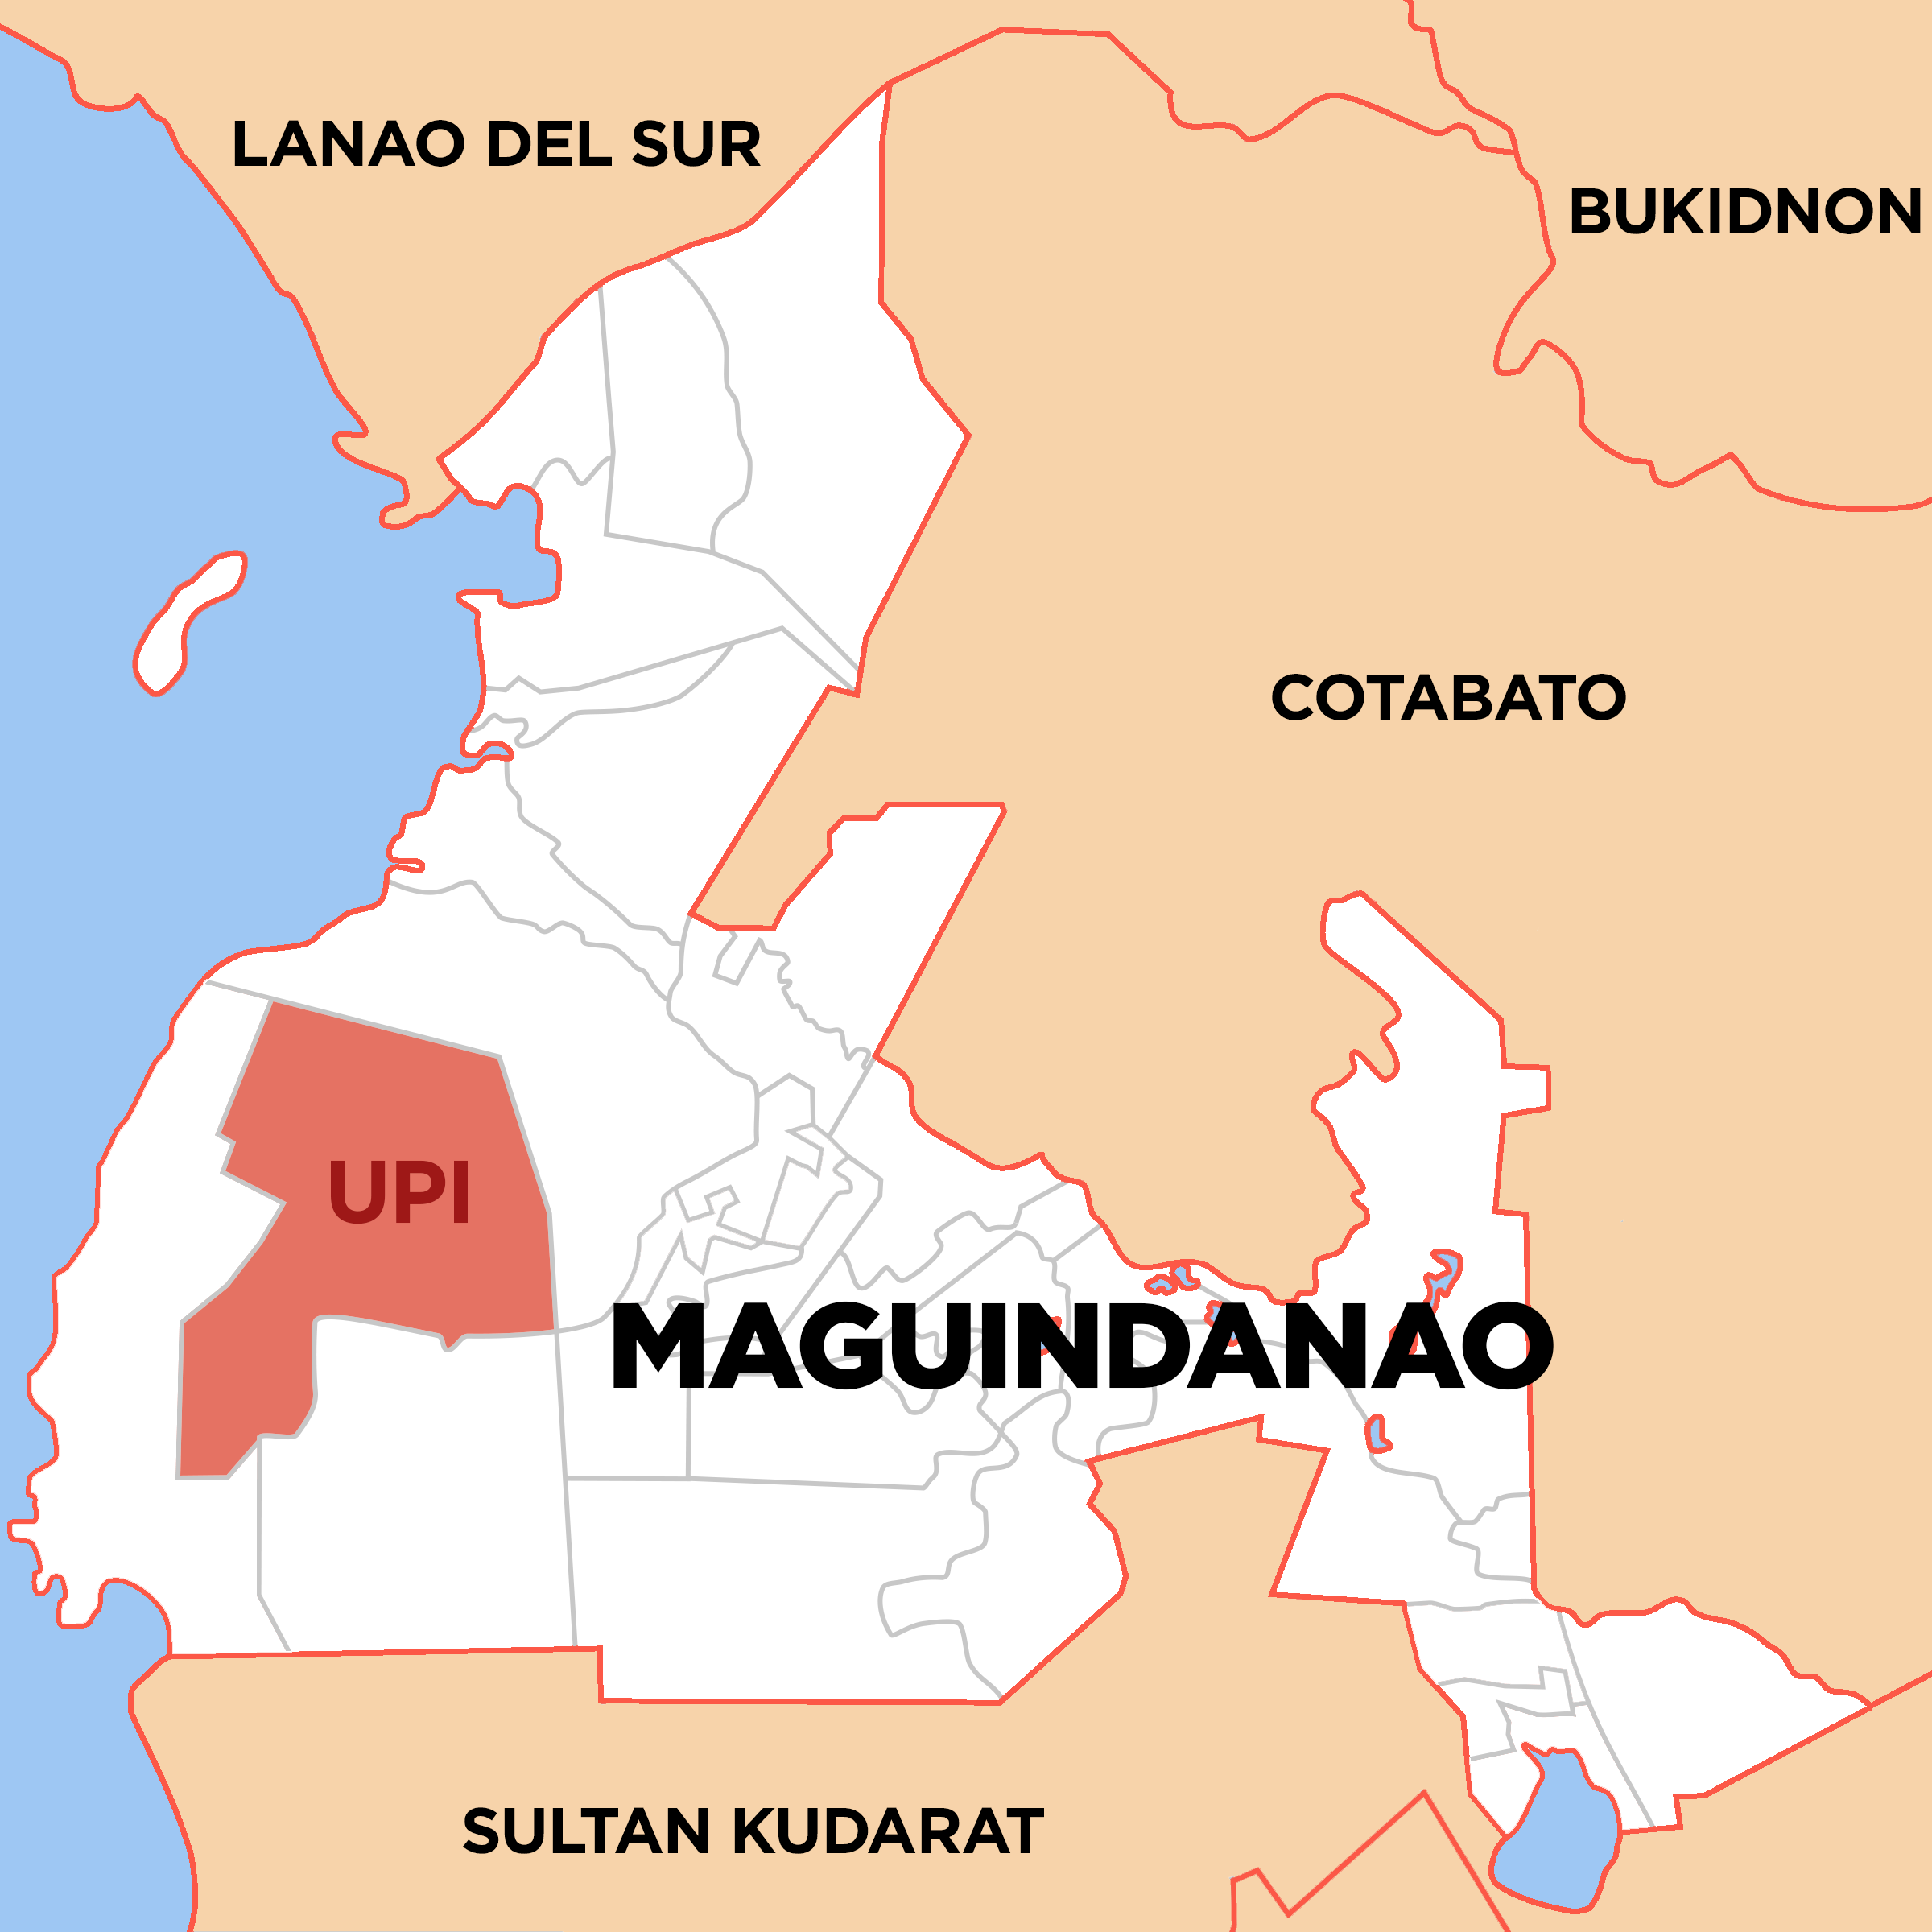 Map of Maguindanao showing the location of Upi